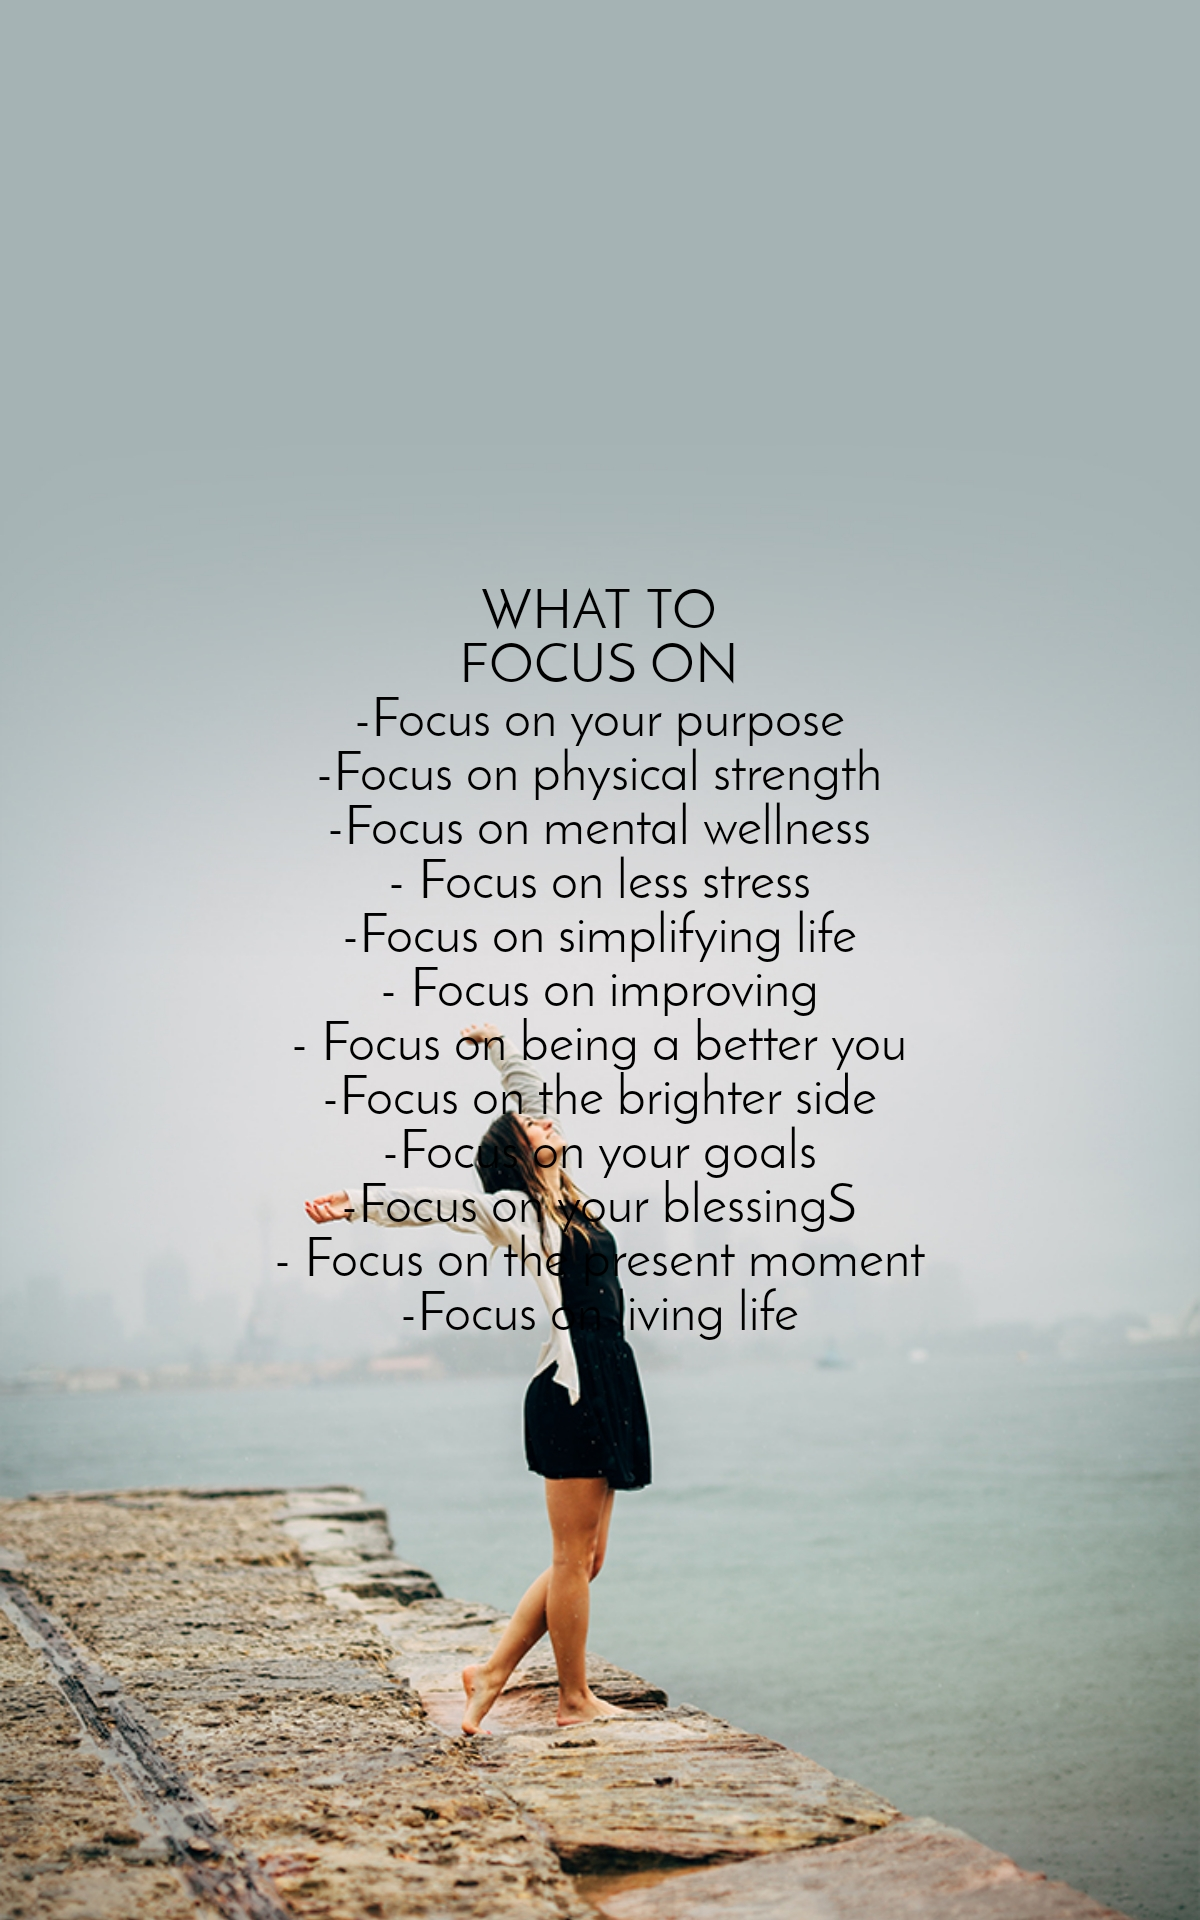 WHAT TO FOCUS ON -Focus on your purpose -Focus on physical strength -Focus on mental wellness - Focus on less stress -Focus on simplifying life - Focus on improving - Focus on being a better you -Focus on the brighter side -Focus on your goals -Focus on your blessingS - Focus on the present moment -Focus on living life